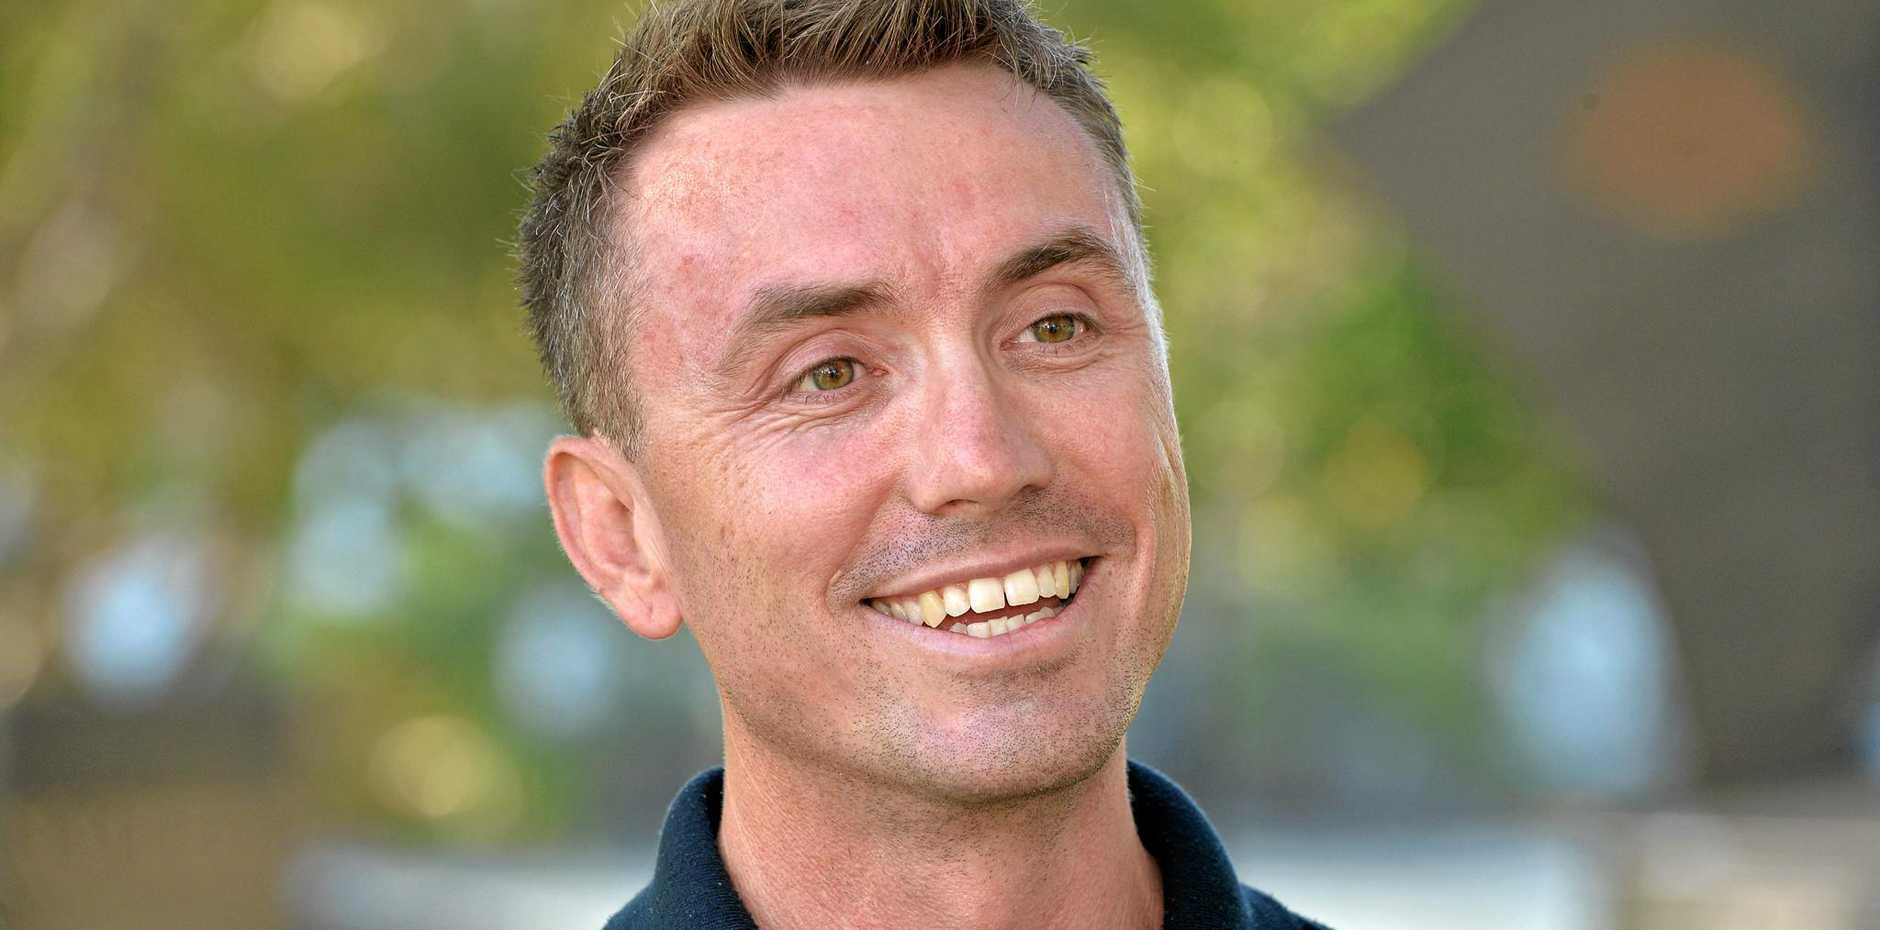 James Ashby - former staffer of Peter Slipper. November 26, 2015. Photo Patrick Woods / Sunshine Coast Daily